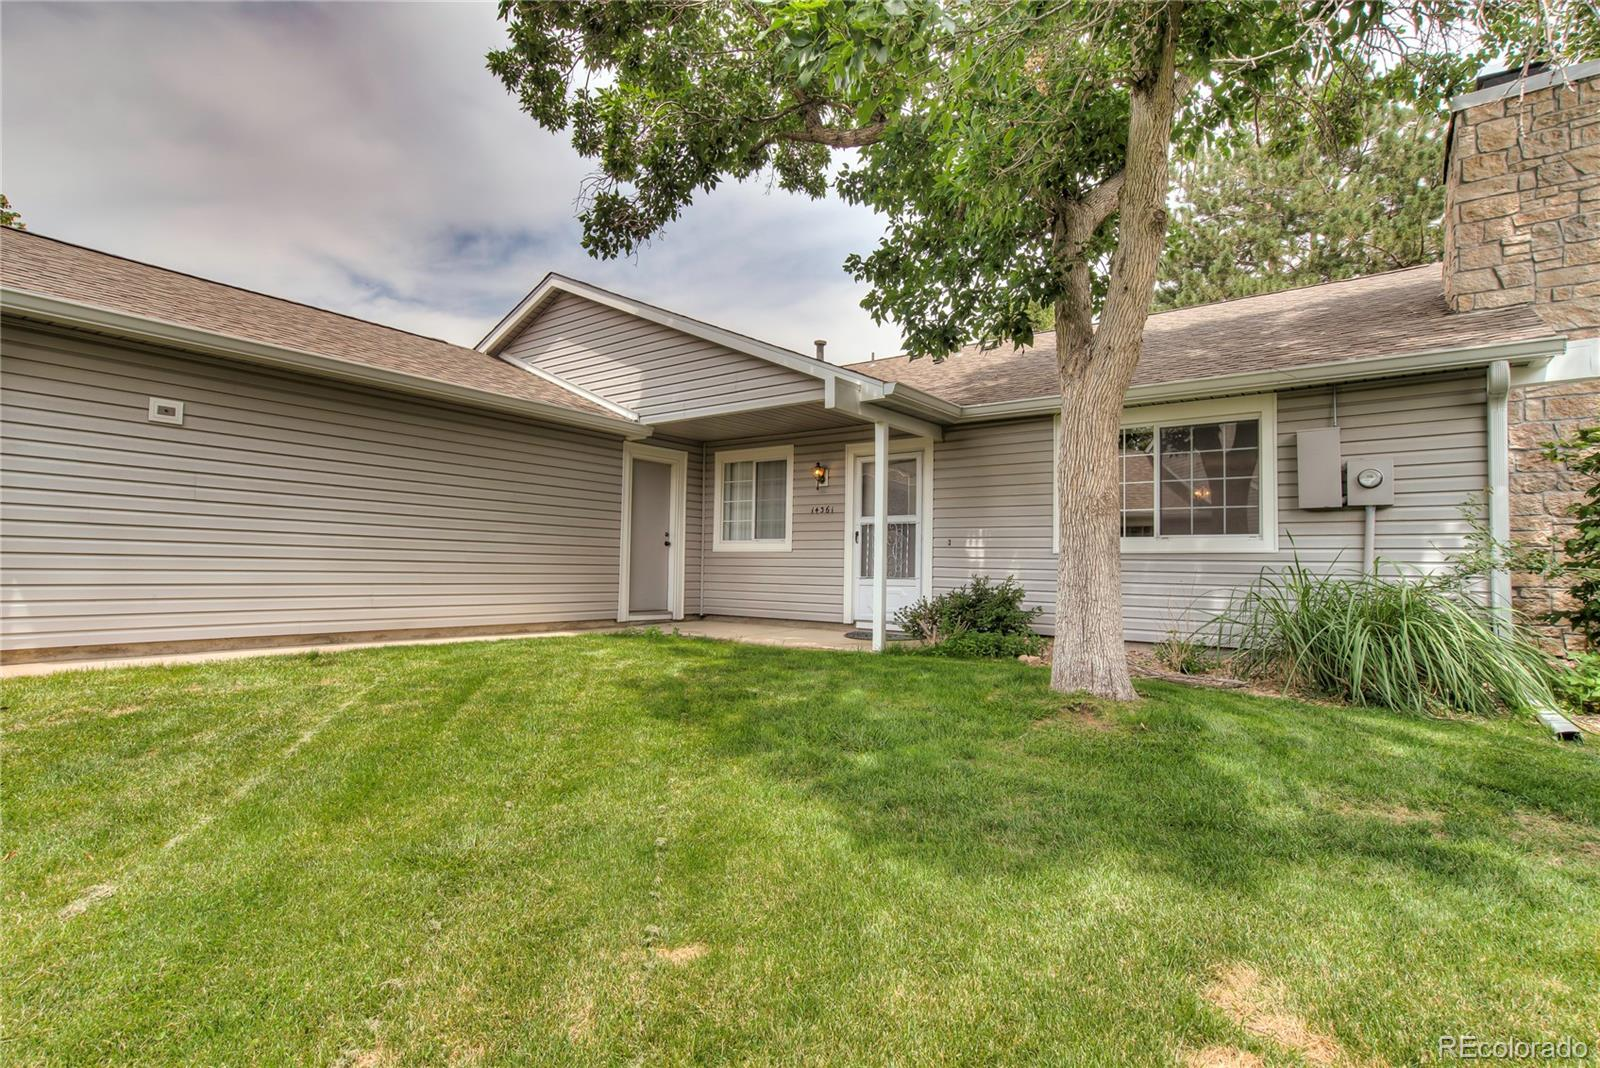 MLS# 3817865 - 1 - 14361 E Marina Drive, Aurora, CO 80014